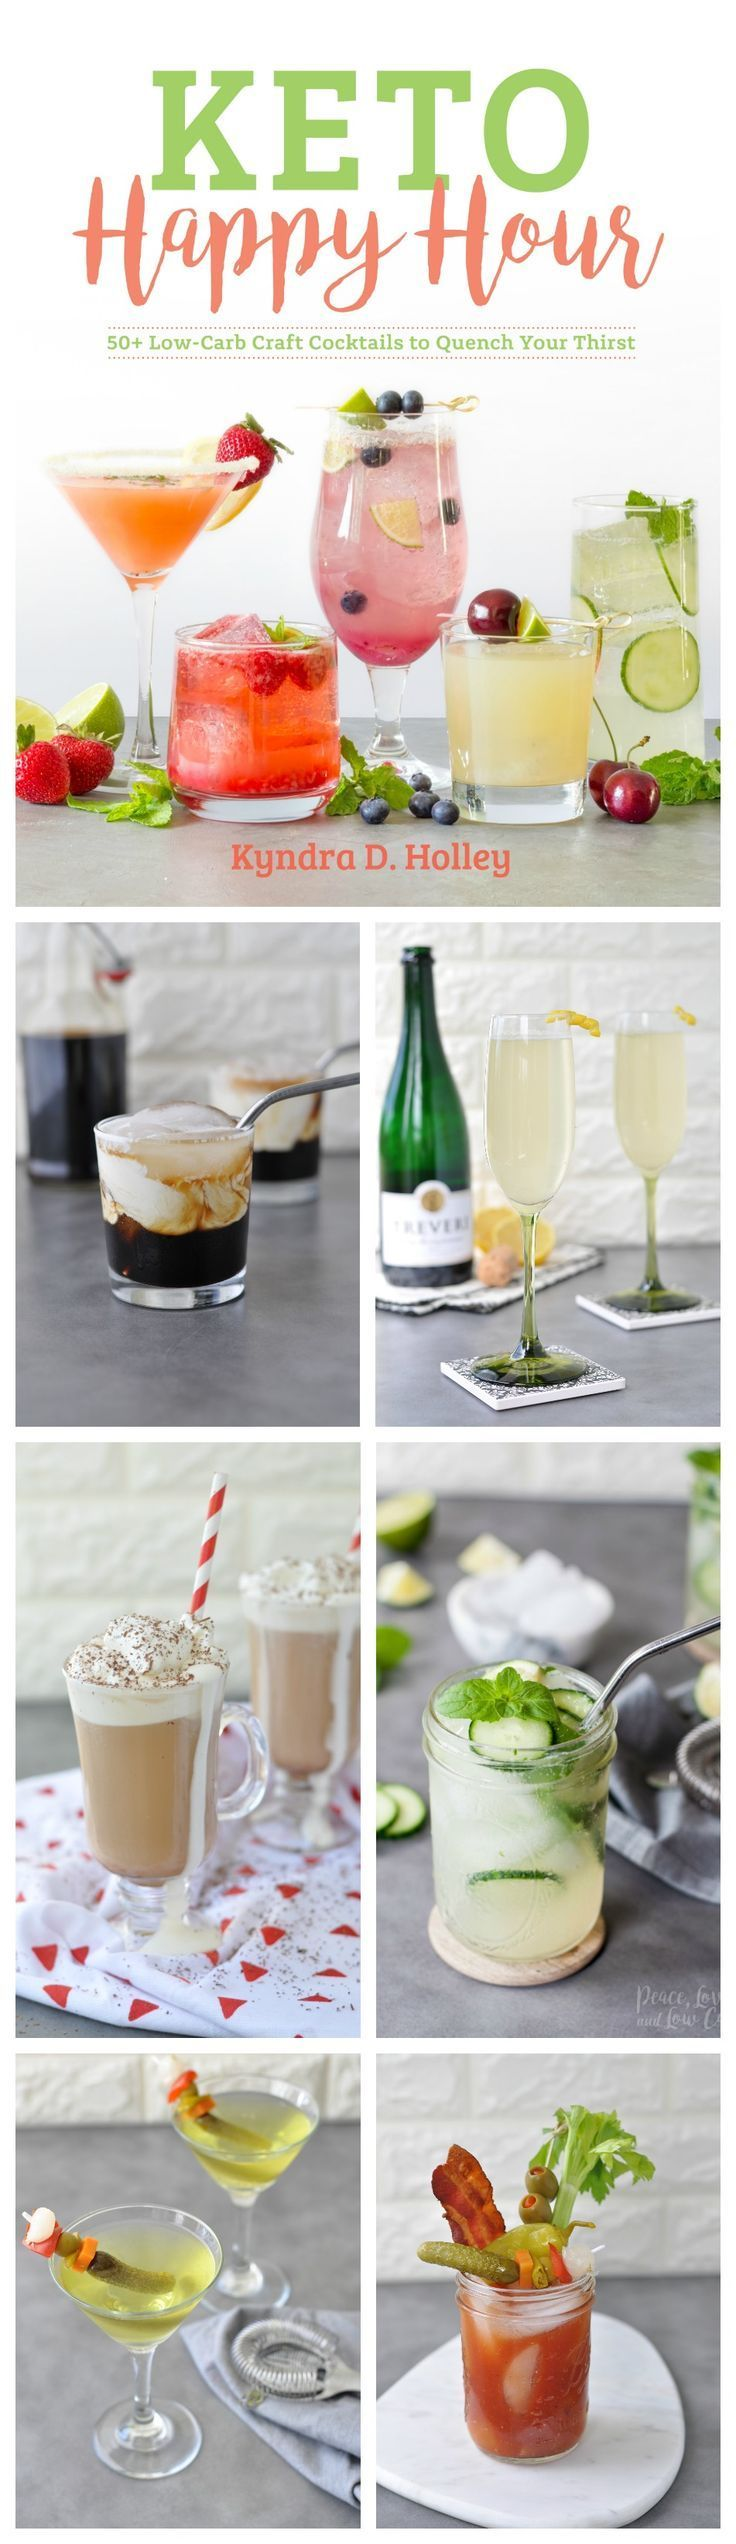 Keto Cocktails Happy Hour - 50  Low Carb Craft Alcoholic Drinks to Quench Your Thirst  via @PeaceLoveLoCarb